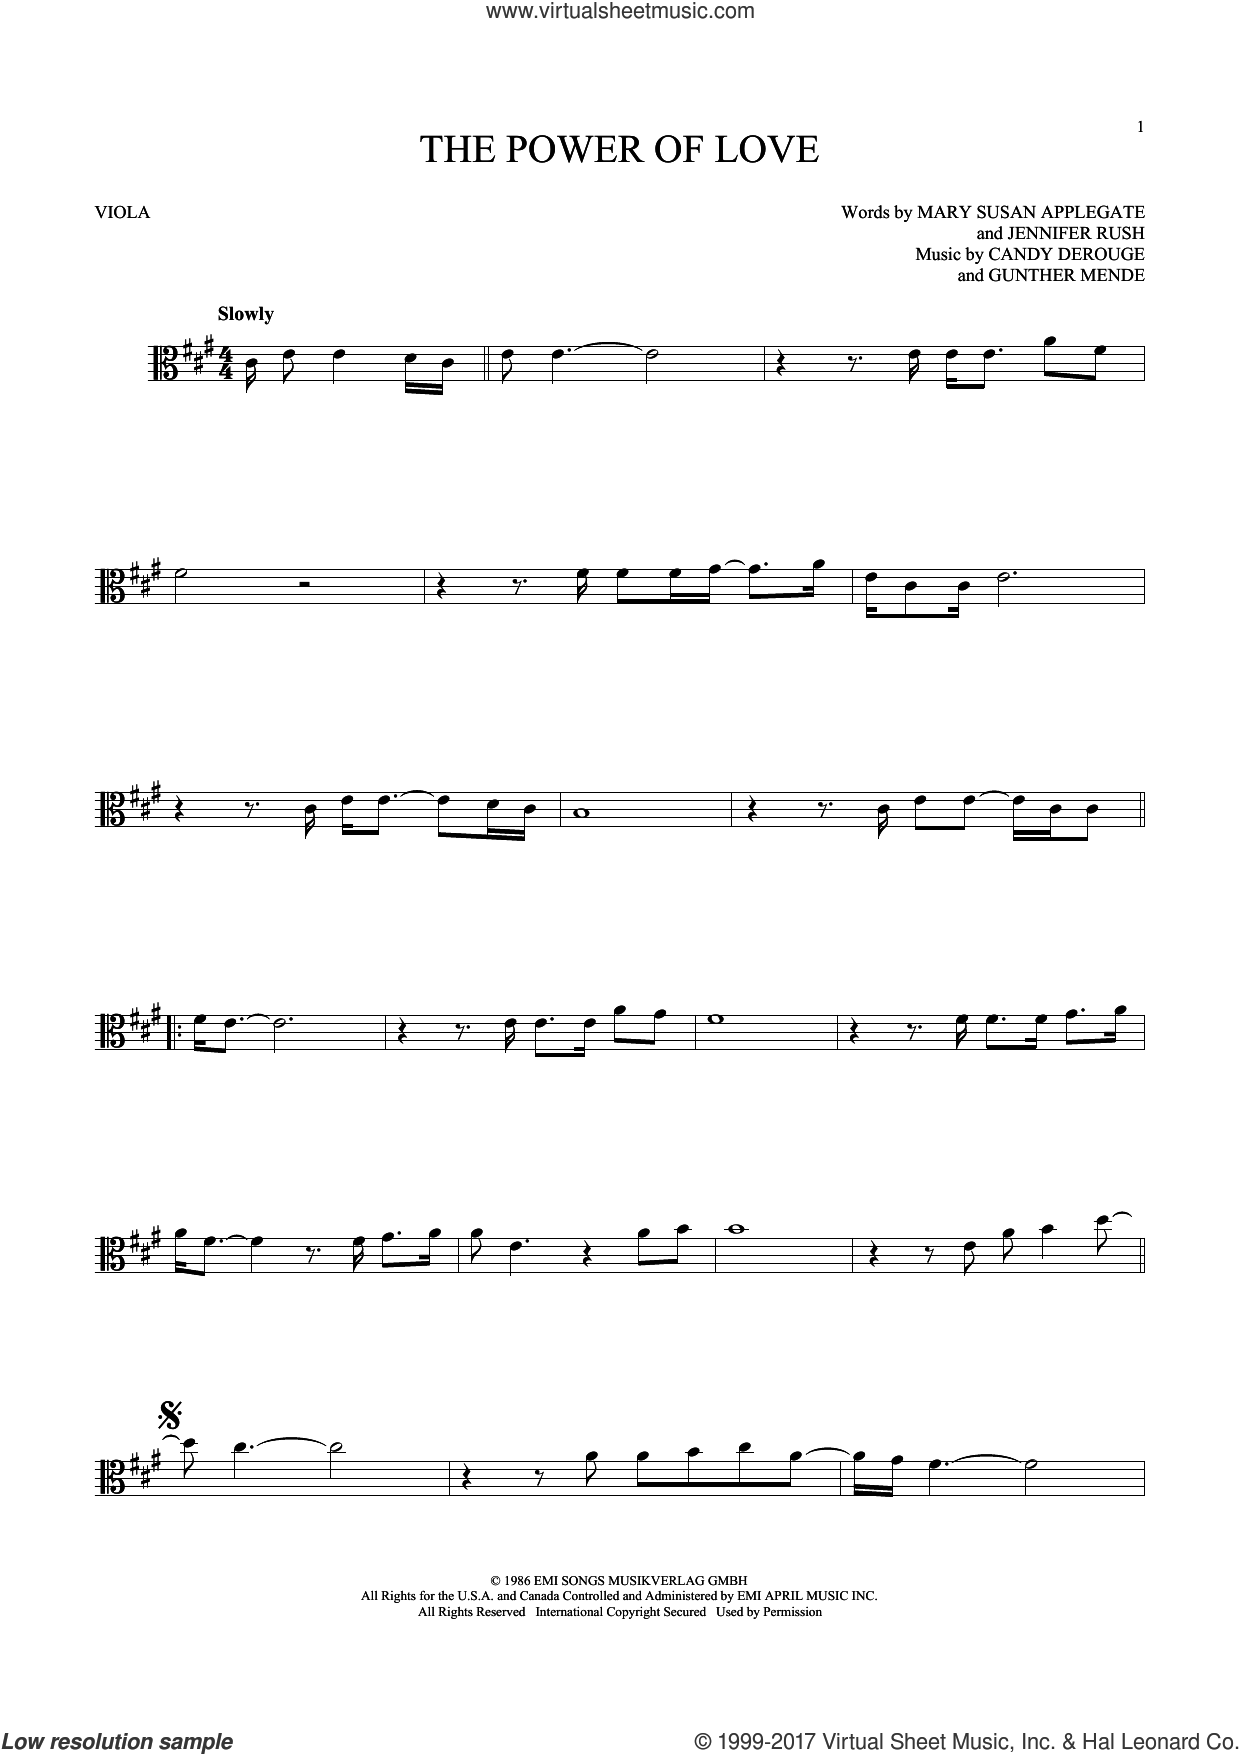 The Power Of Love sheet music for viola solo by Air Supply, Celine Dion, Laura Brannigan, Candy Derouge, Gunther Mende, Jennifer Rush and Mary Susan Applegate, intermediate skill level